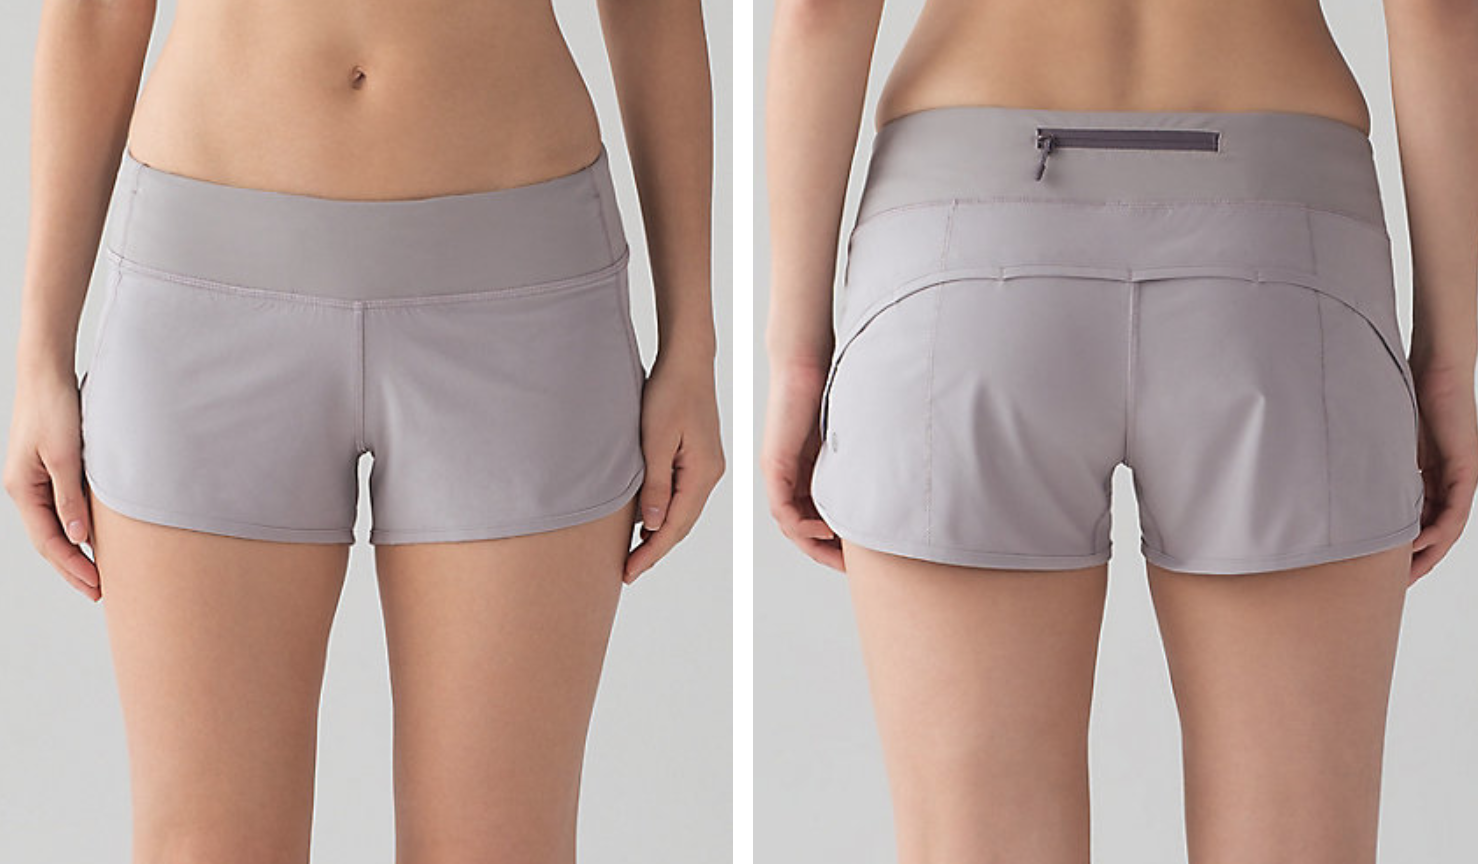 https://api.shopstyle.com/action/apiVisitRetailer?url=https%3A%2F%2Fshop.lululemon.com%2Fp%2Fwomen-shorts%2FRun-Speed-Short-32138%2F_%2Fprod3040012%3Frcnt%3D55%26N%3D1z13ziiZ7vf%26cnt%3D71%26color%3DLW7578S_028603&site=www.shopstyle.ca&pid=uid6784-25288972-7